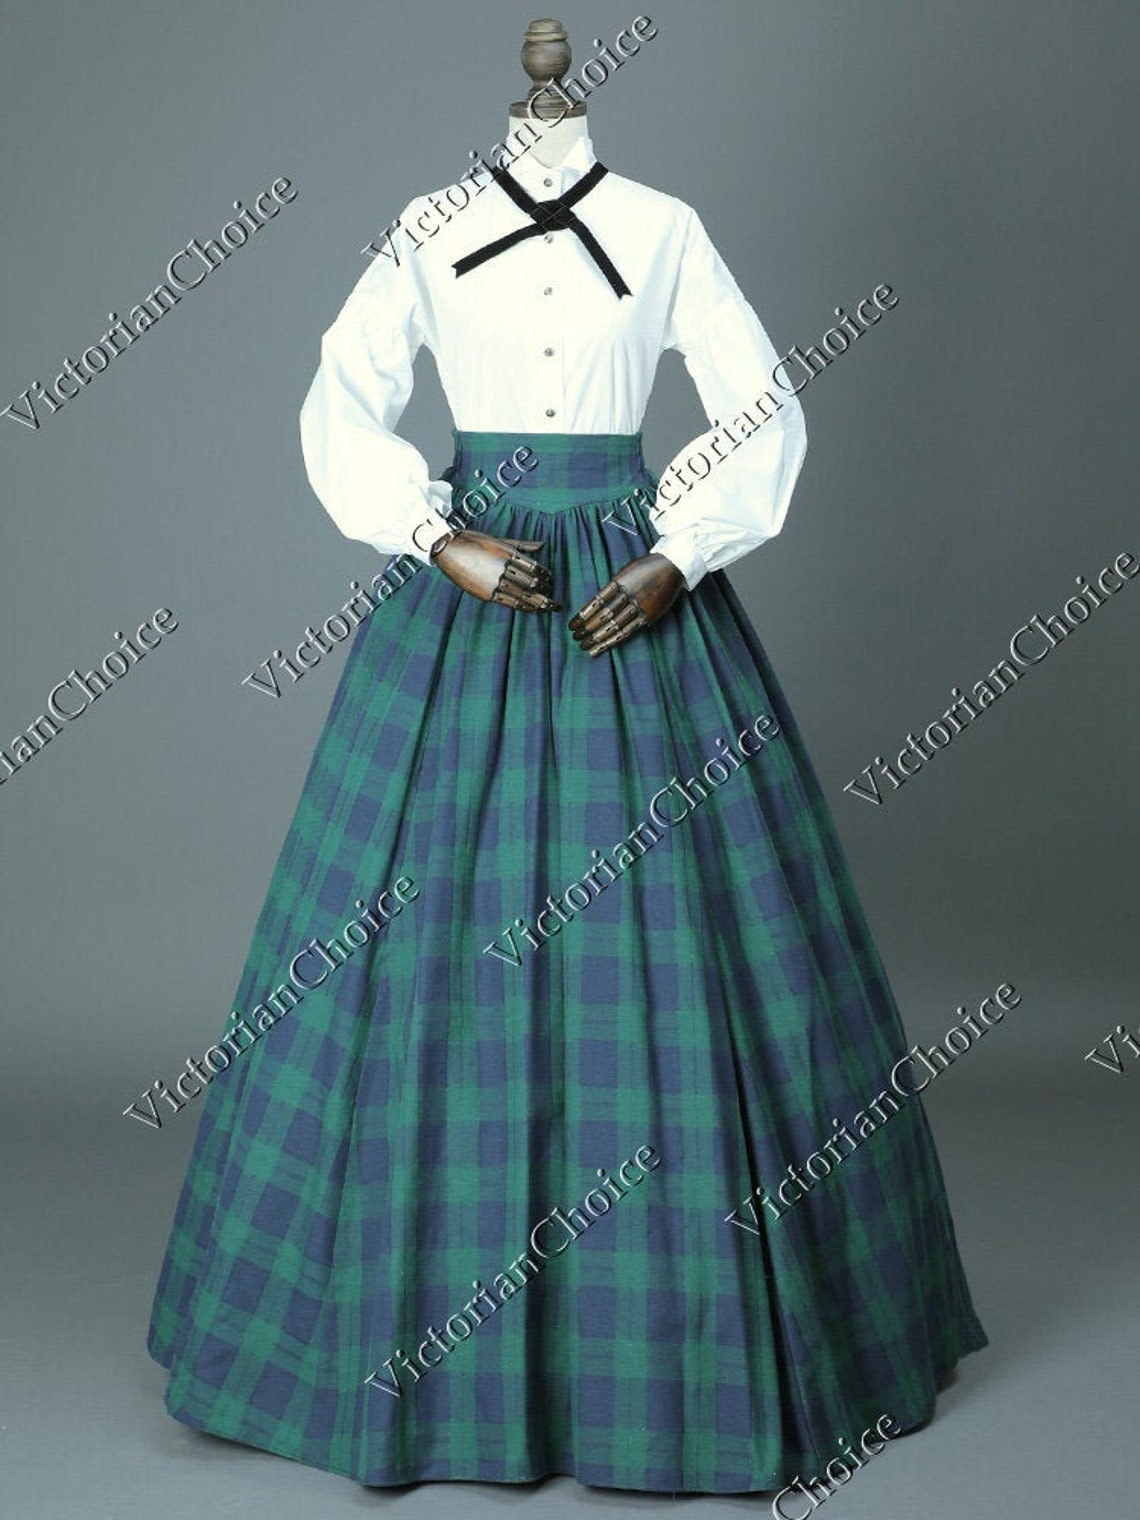 Victorian Clothing, Costumes & 1800s Fashion Civil War Victorian Charles Dickens Christmas Caroler Tartan Dress Frontier Women Country Maid Theater Halloween Costume $149.00 AT vintagedancer.com